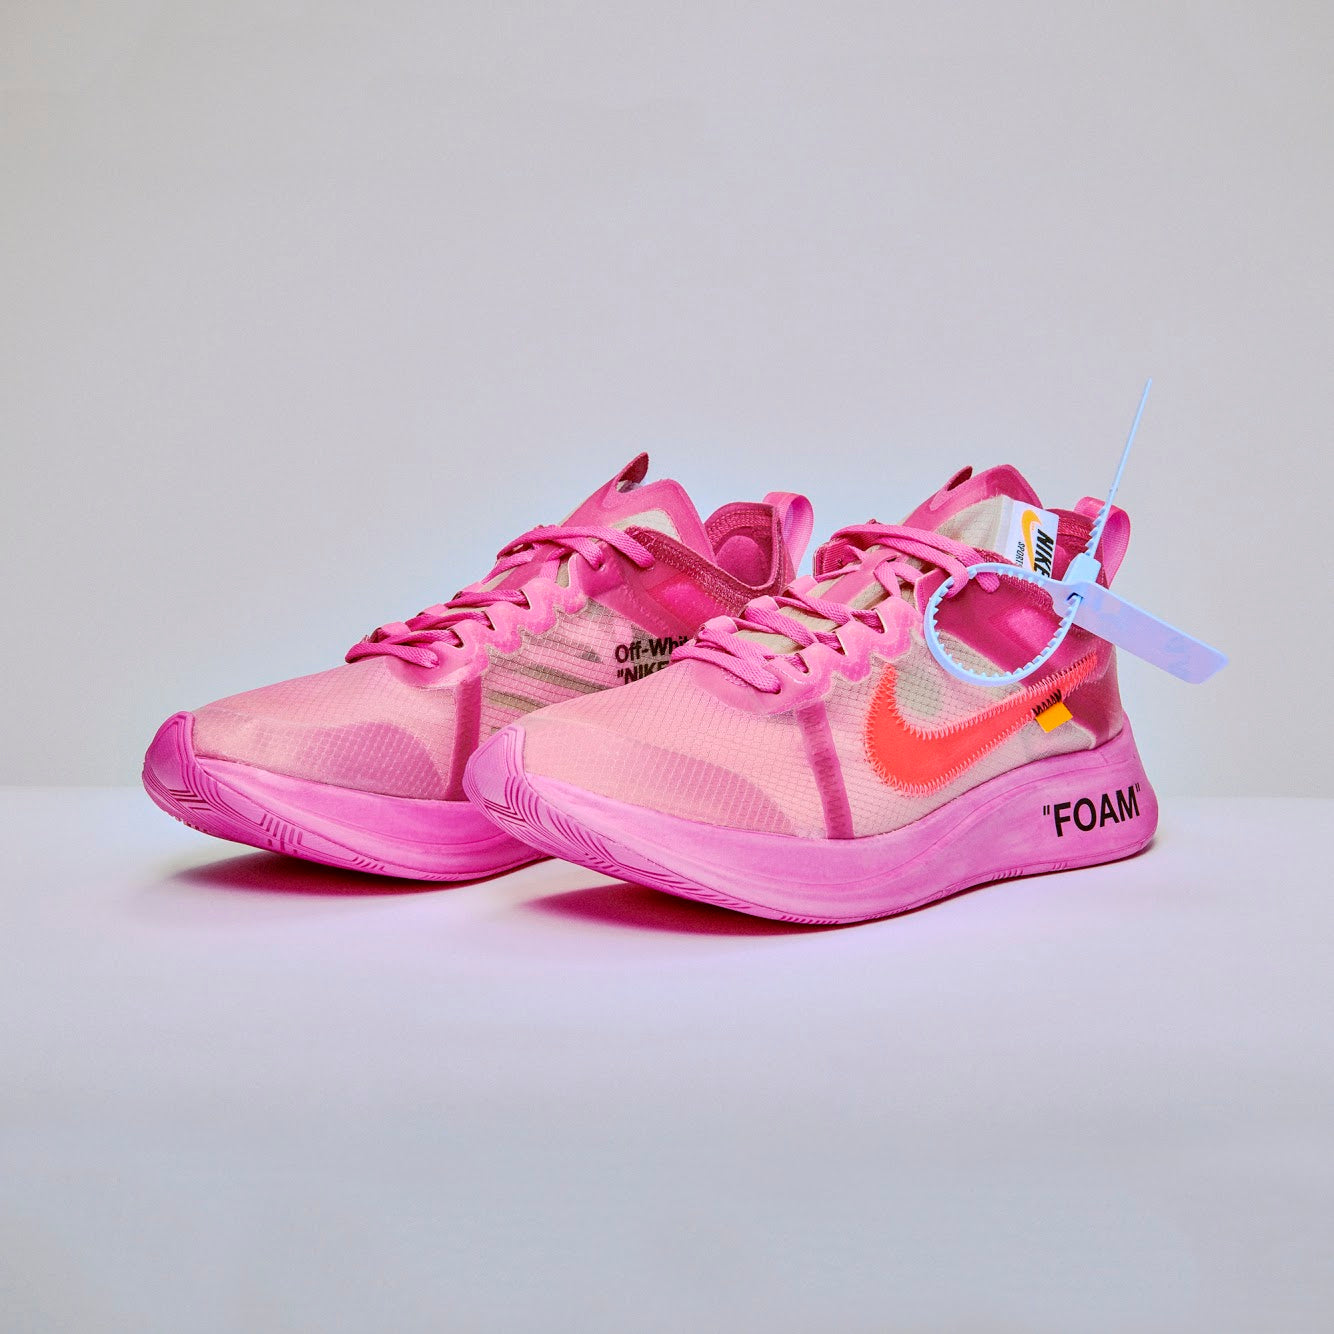 Nike x Off-White THE TEN:  Zoom Fly - Tulip Pink / Racer Pink / Laser